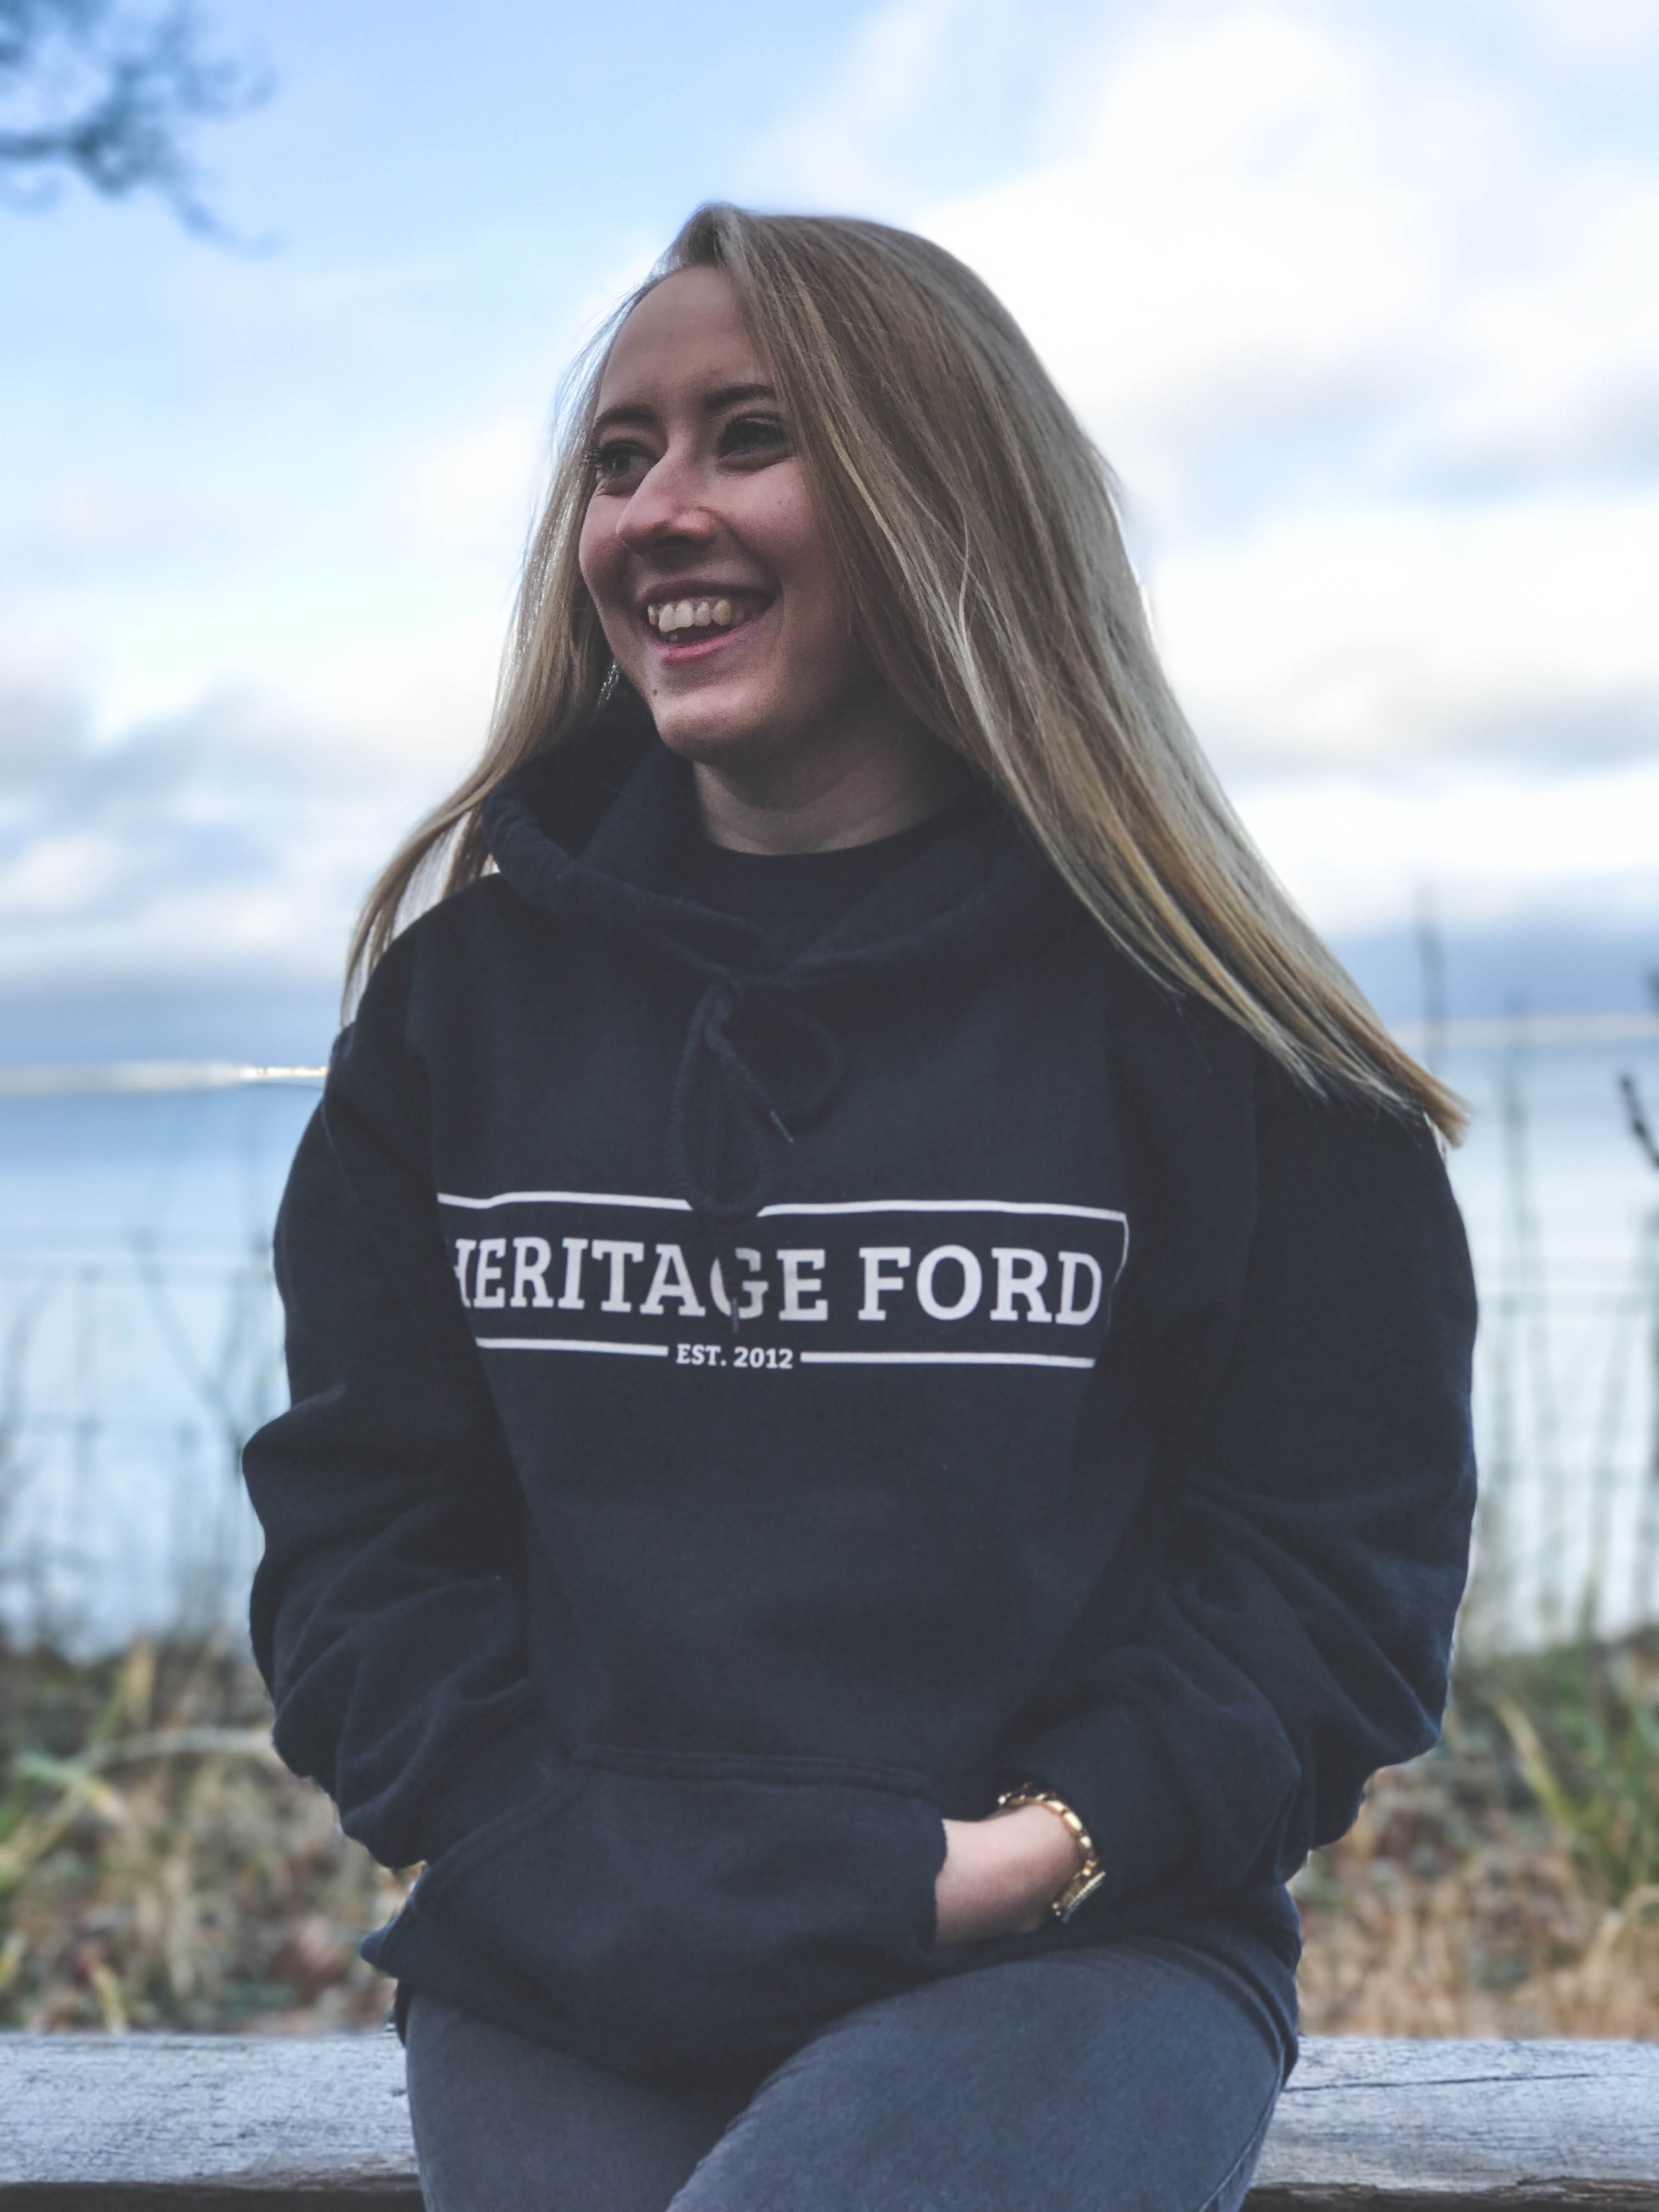 HeritageFord logo on jumper